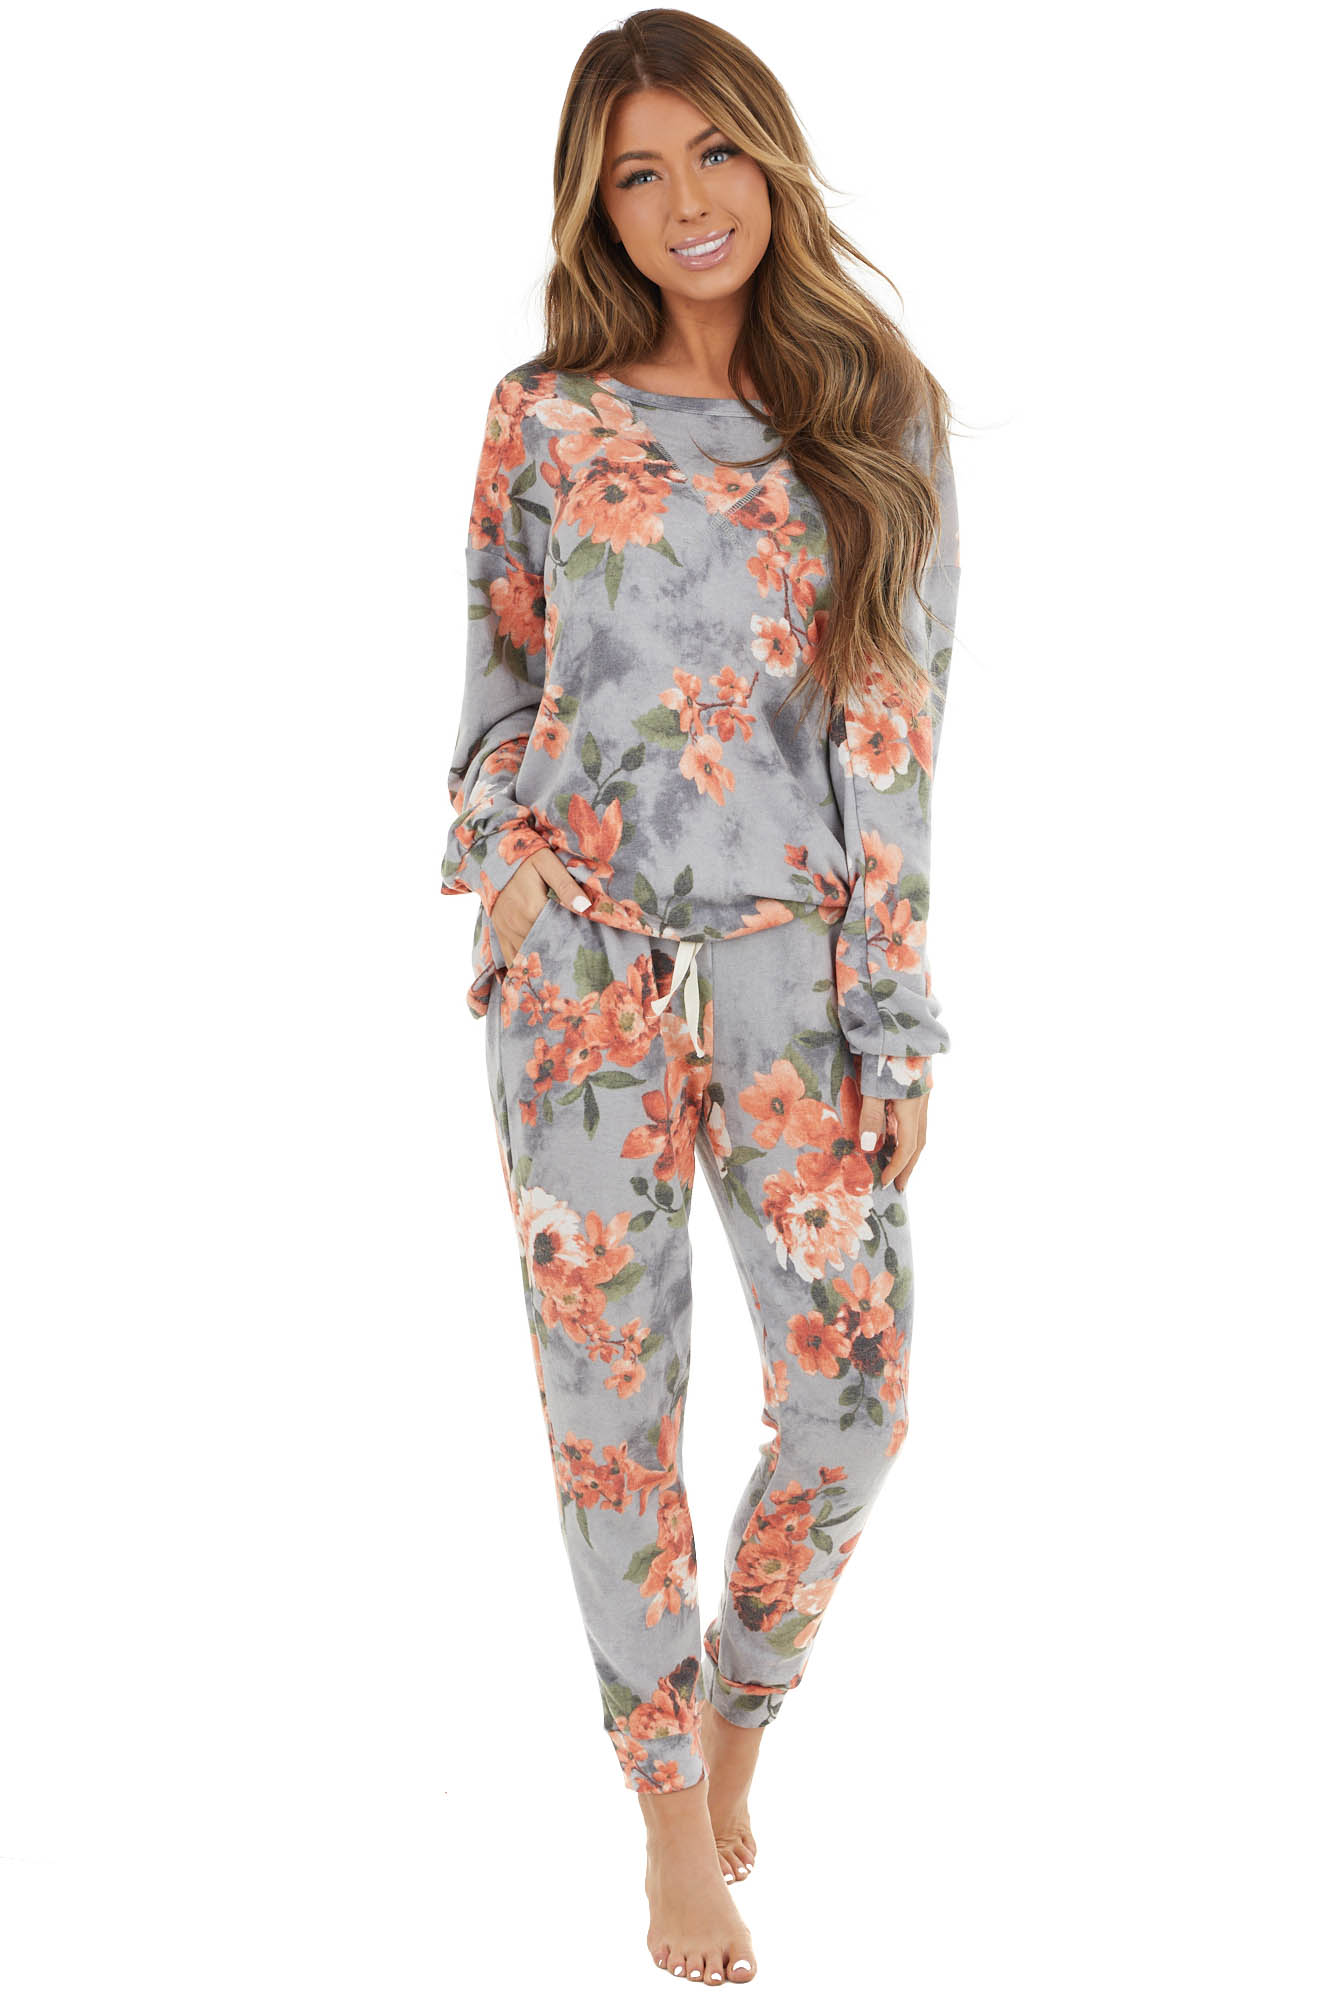 Stone Grey Floral Print Long Sleeve Top and Pants Set